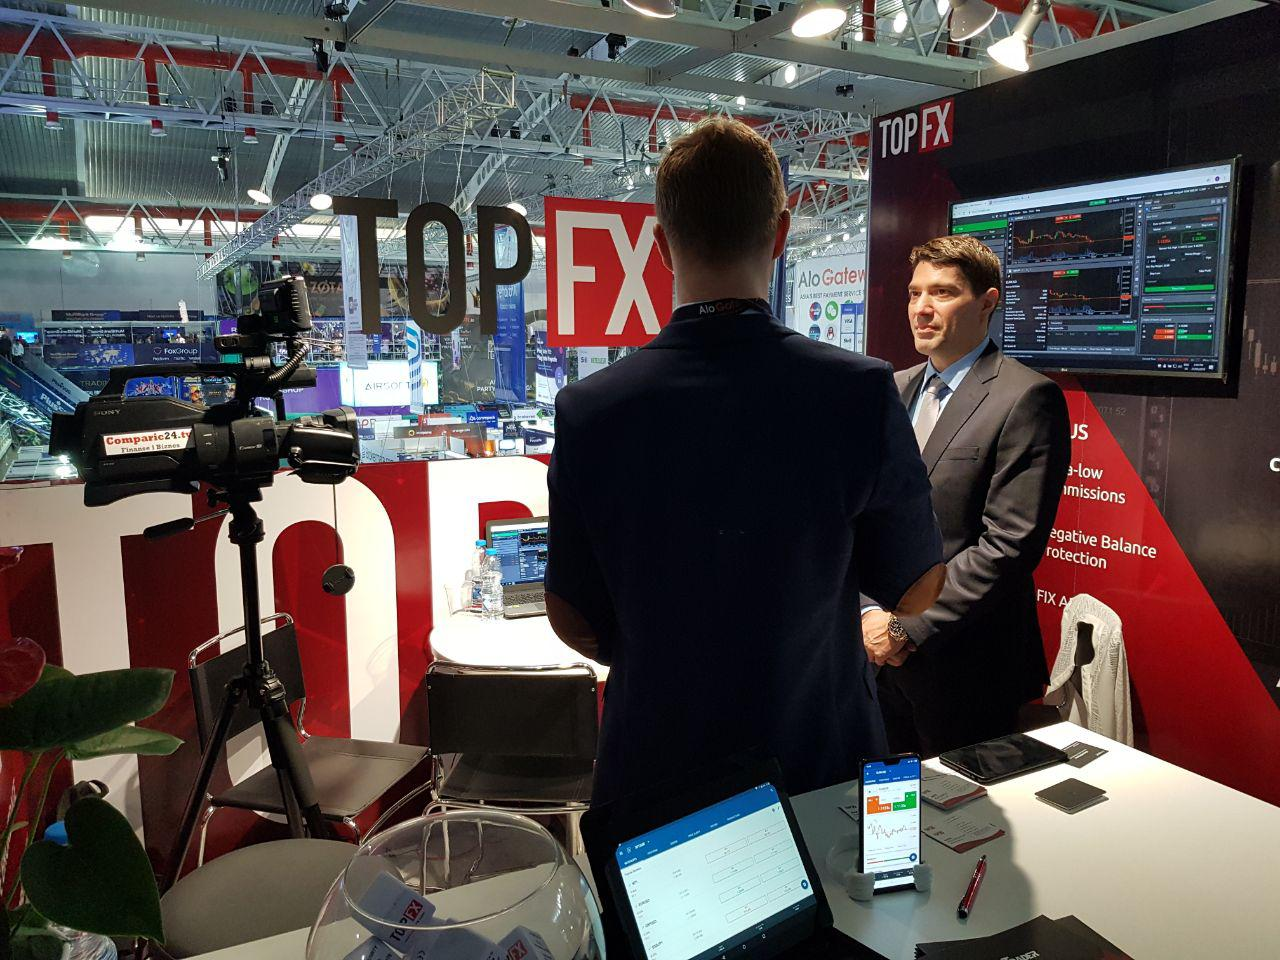 TopFX CEO Alex Katsaros being interviewed by Comparic Media Group at the iFX Expo